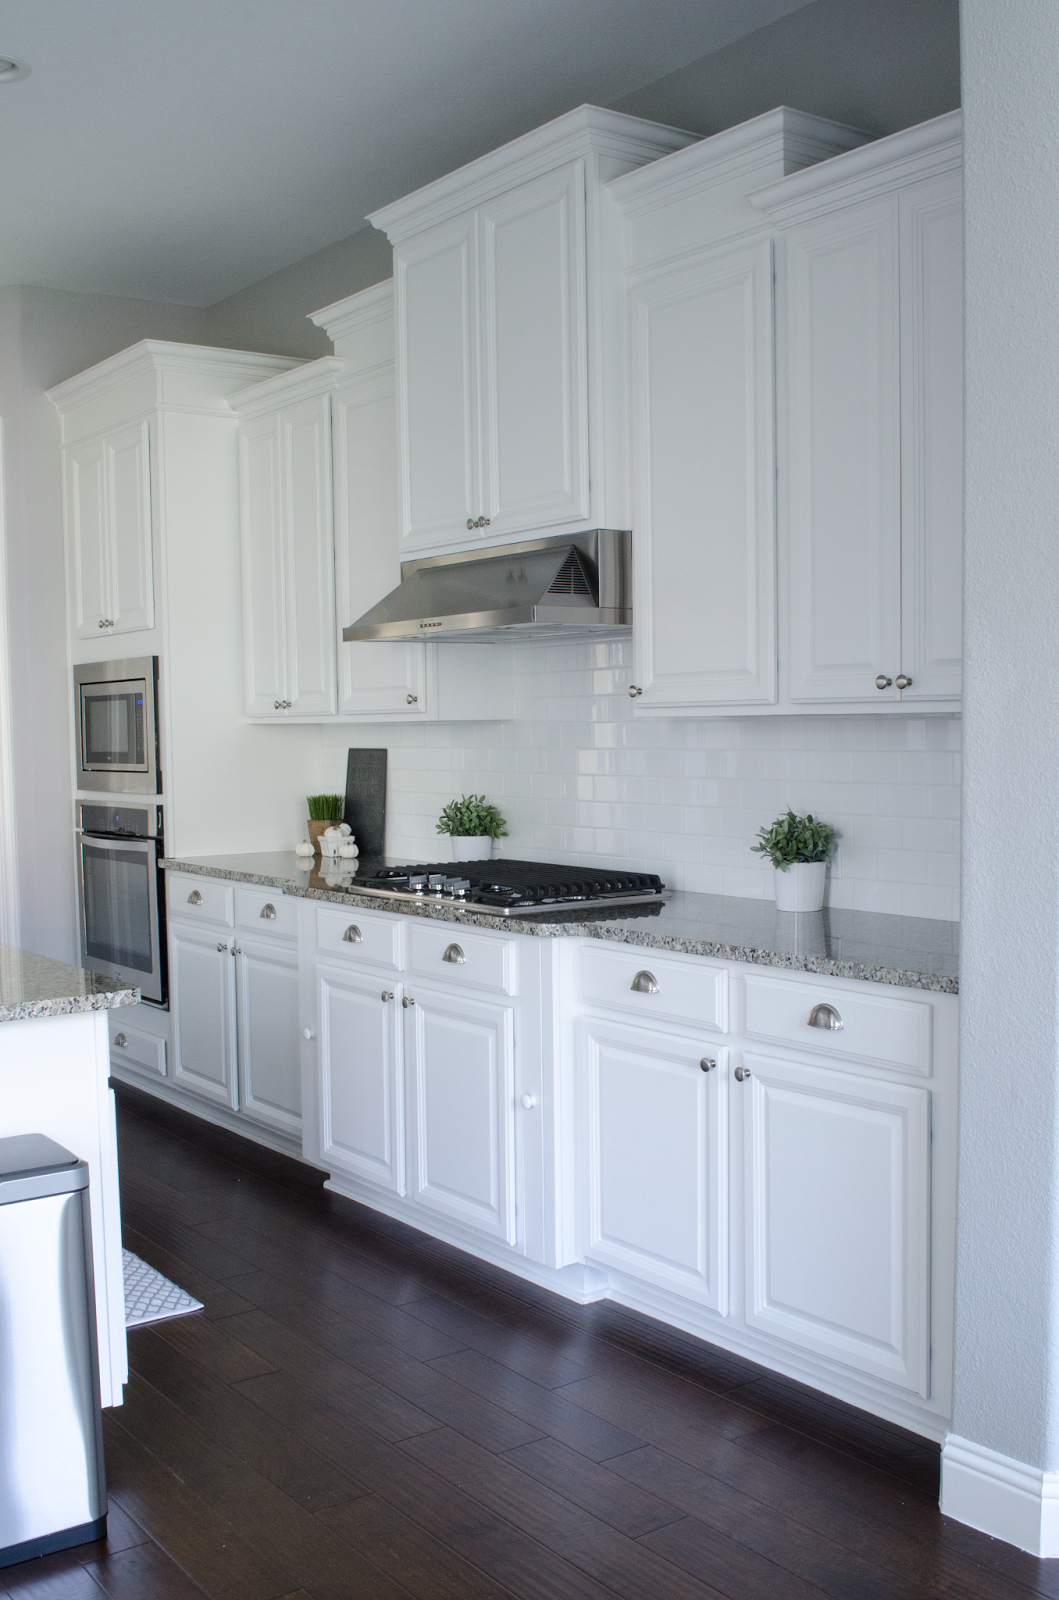 White kitchen cabinets kitchen love pinterest for Small kitchens with white cabinets